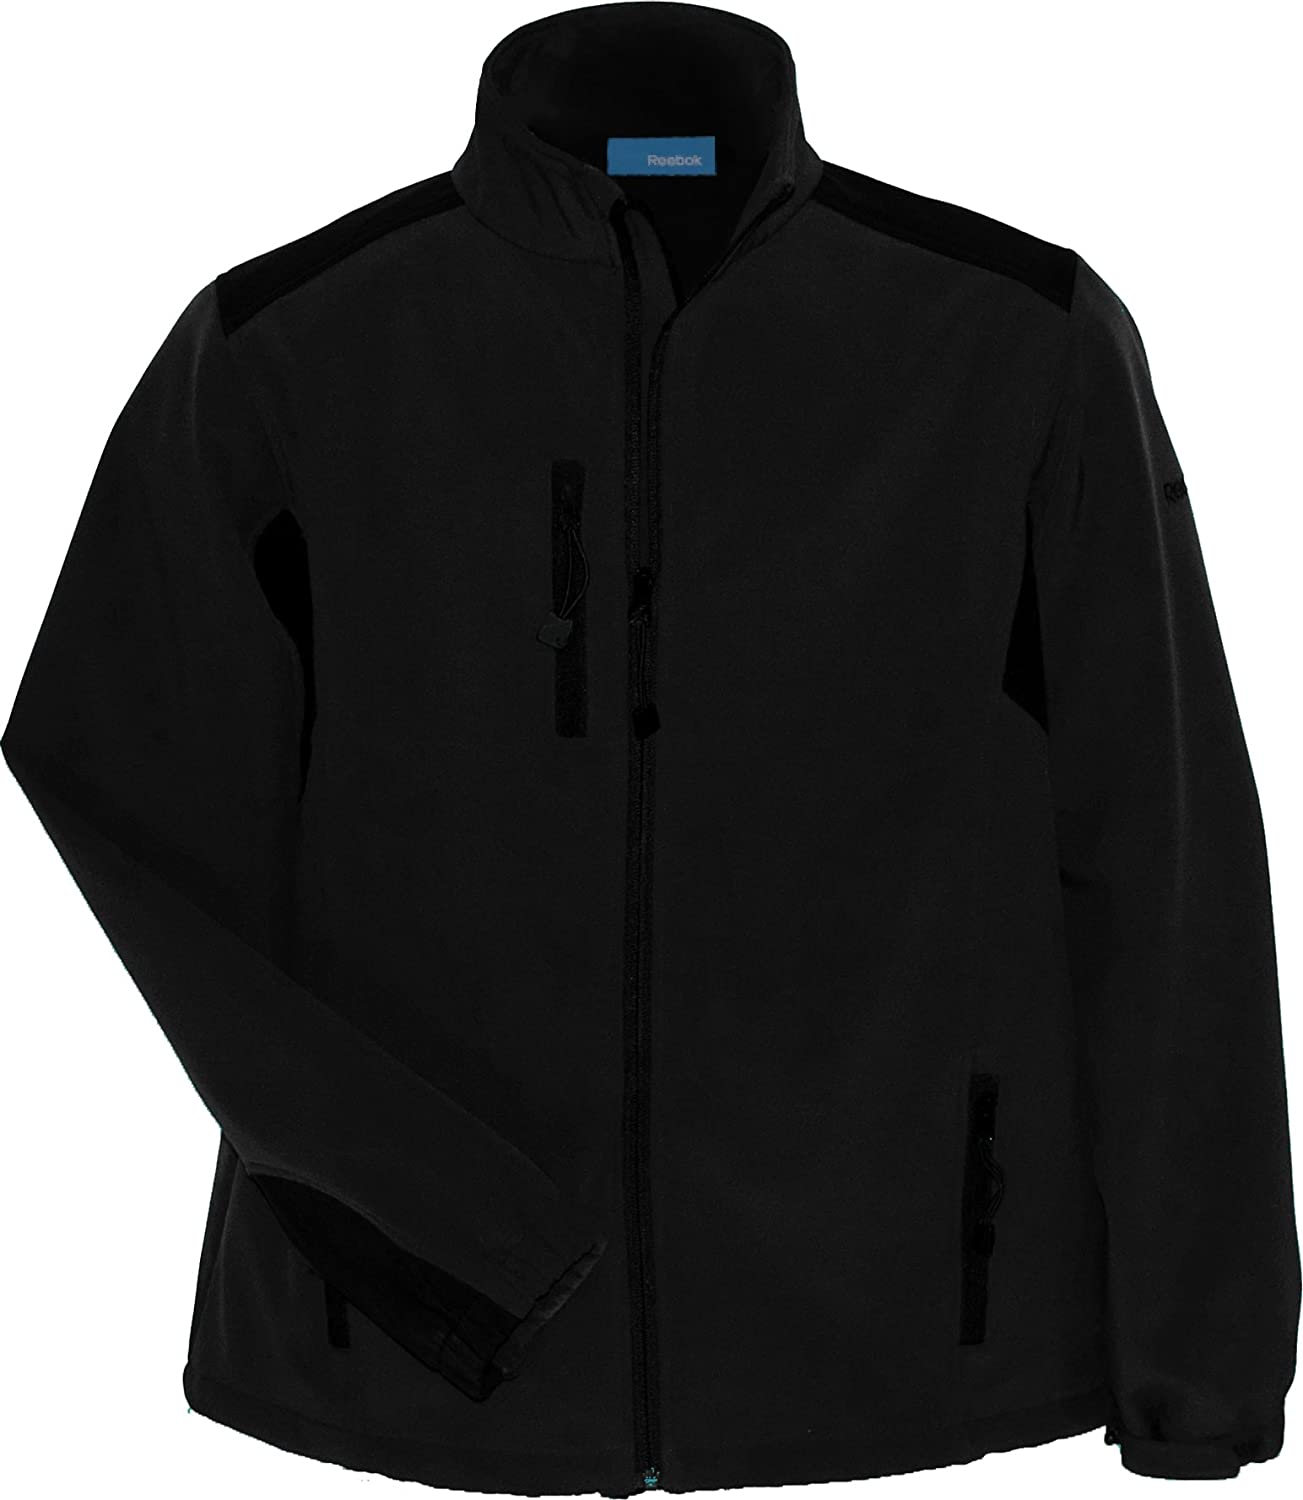 Reebok Mens Full Zip Soft Shell Sports Jacket